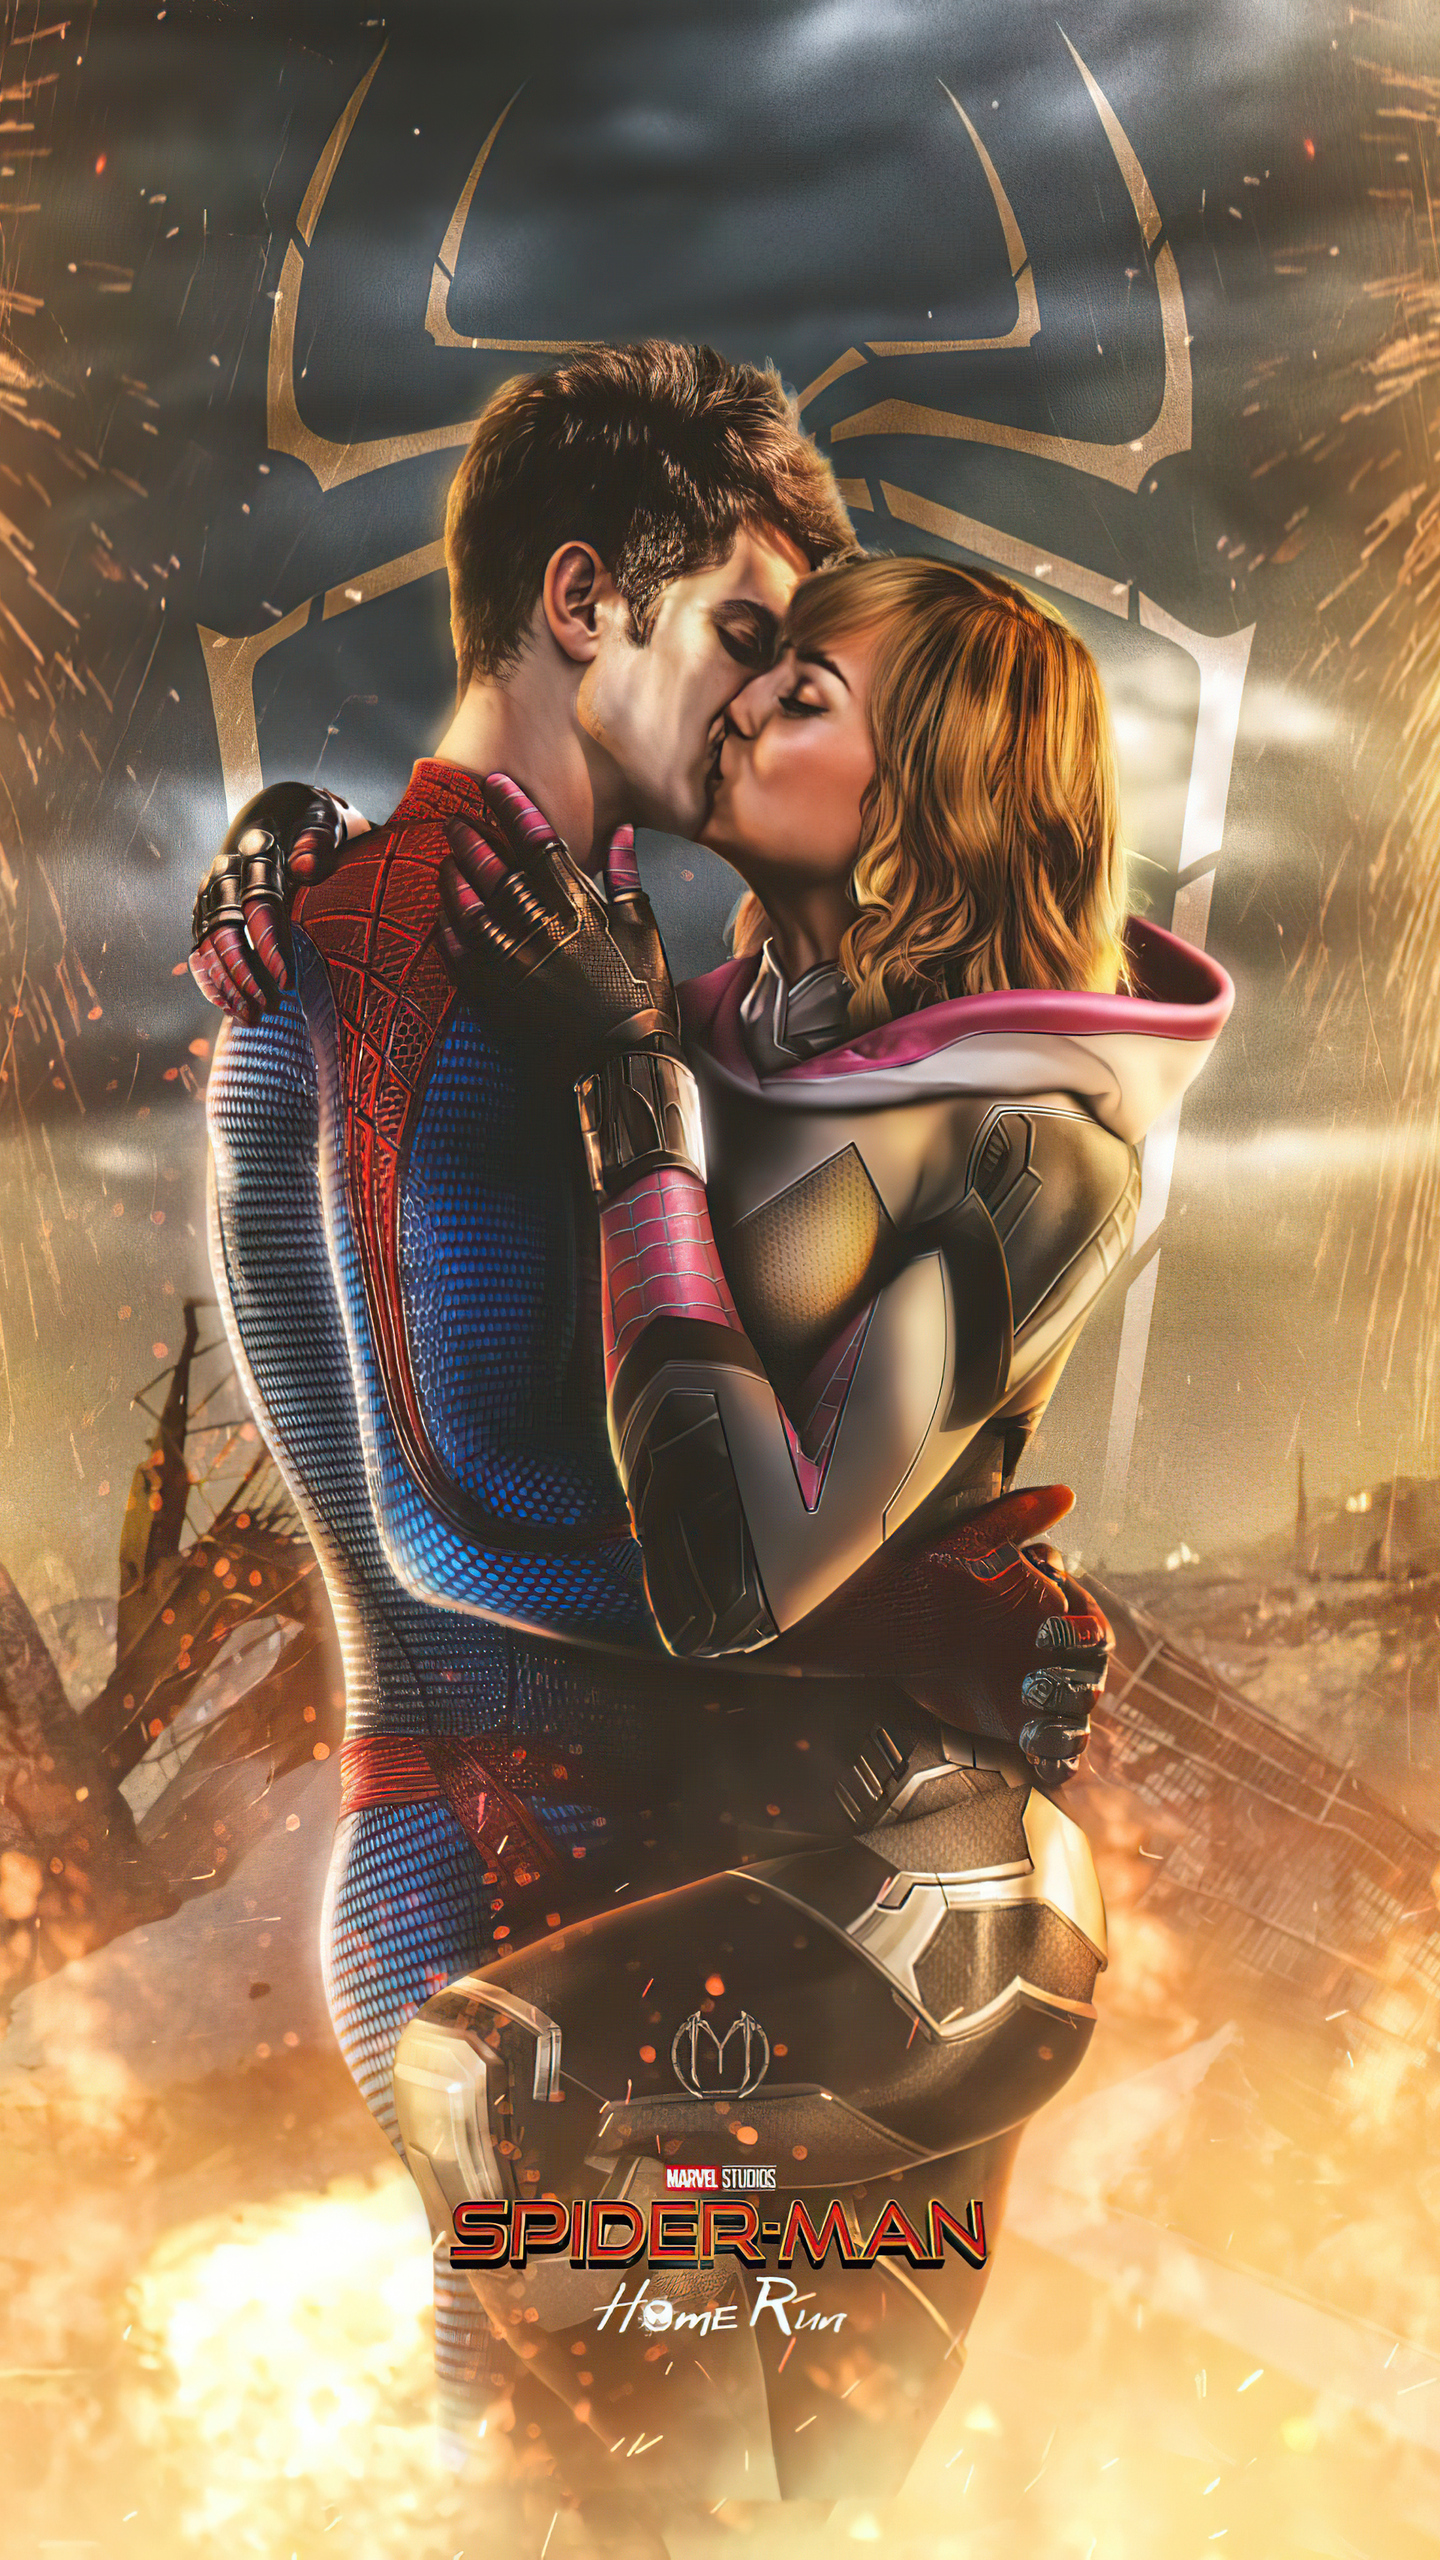 spiderman-and-gwen-stacy-kissing-4k-ac.jpg